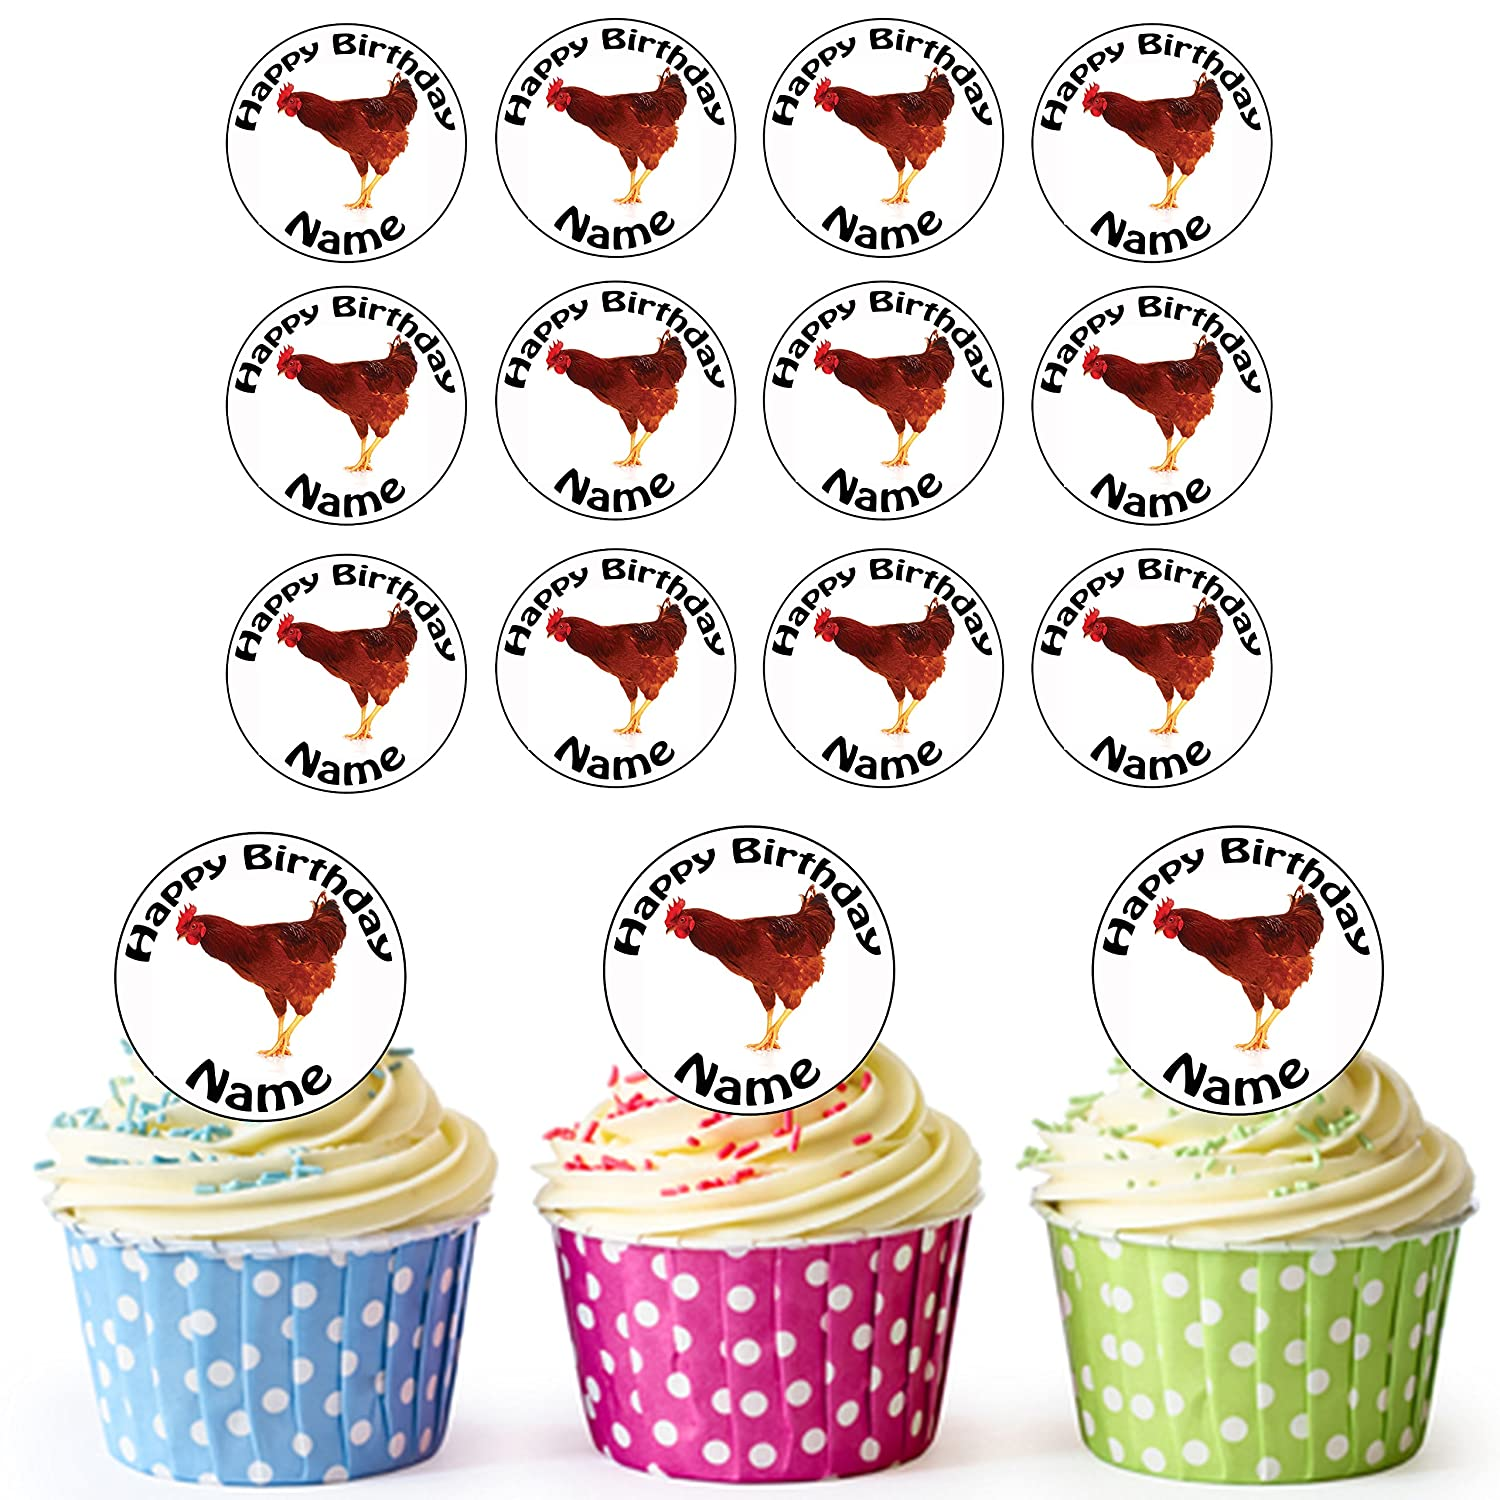 Farm Chicken 24 Personalised Edible Cupcake Toppers/Birthday Cake Decorations - Easy Precut Circles AK Giftshop Ltd